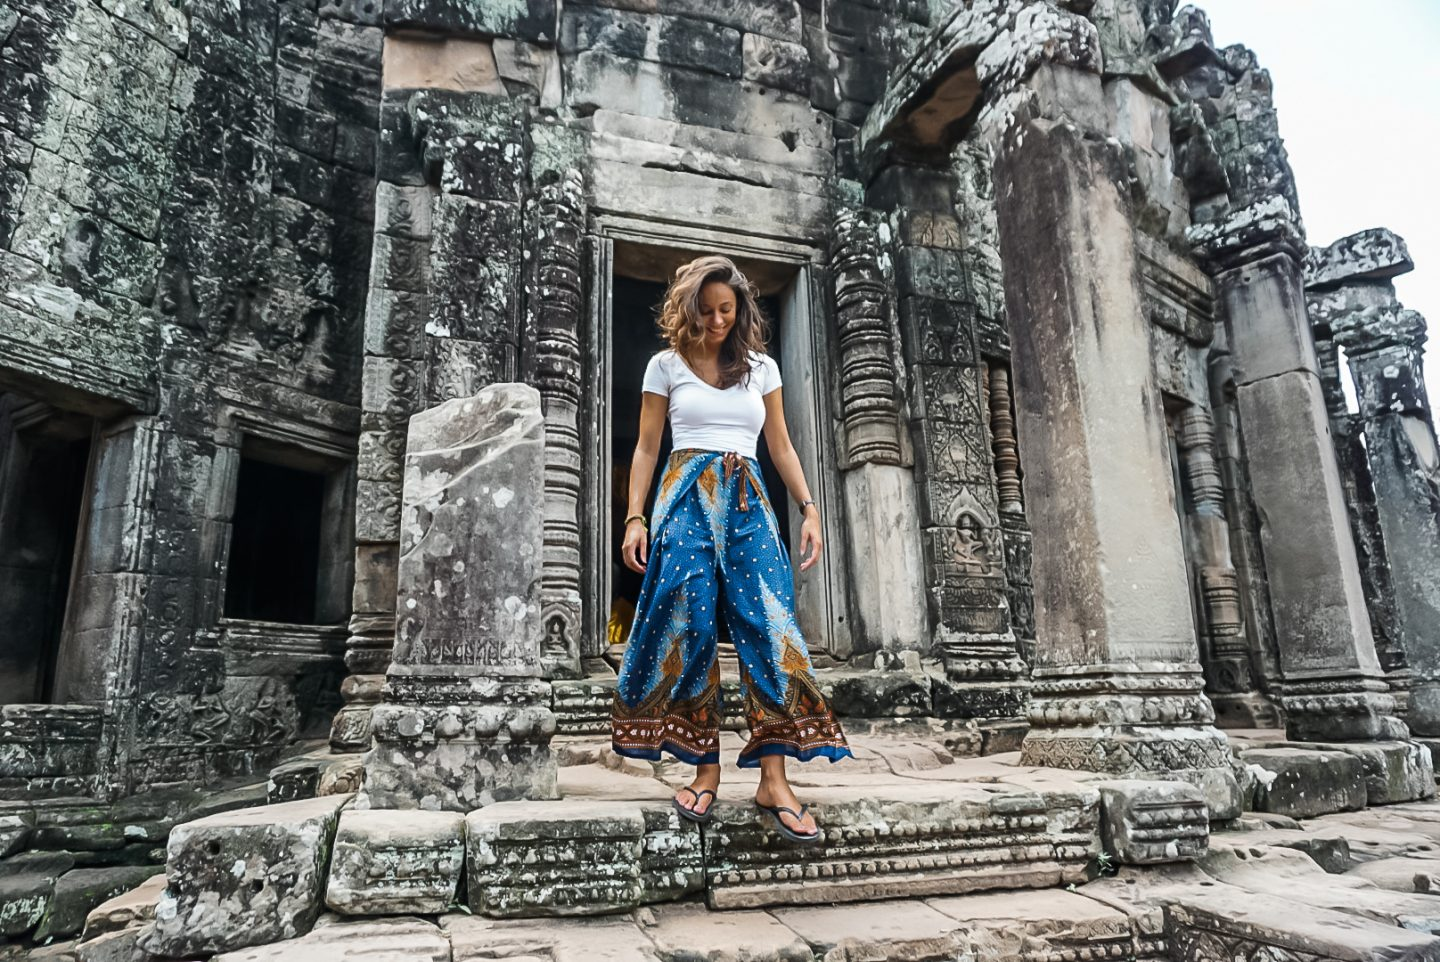 solo female traveler at a temple in cambodia